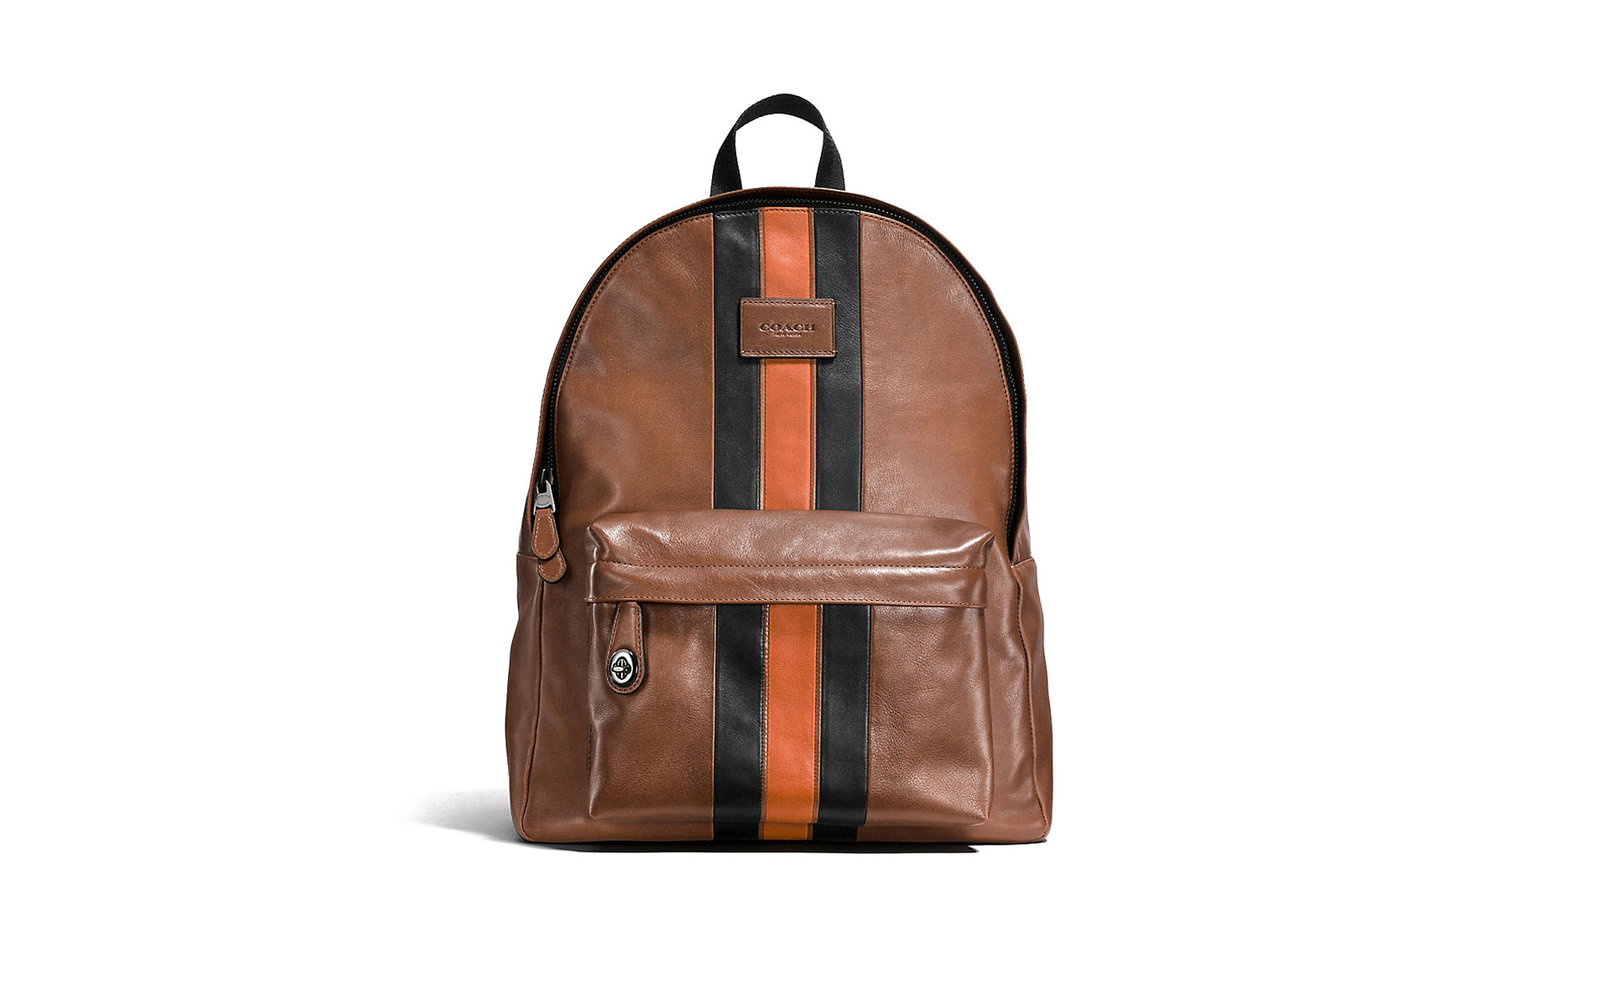 High Quality Backpack Brands - CEAGESP